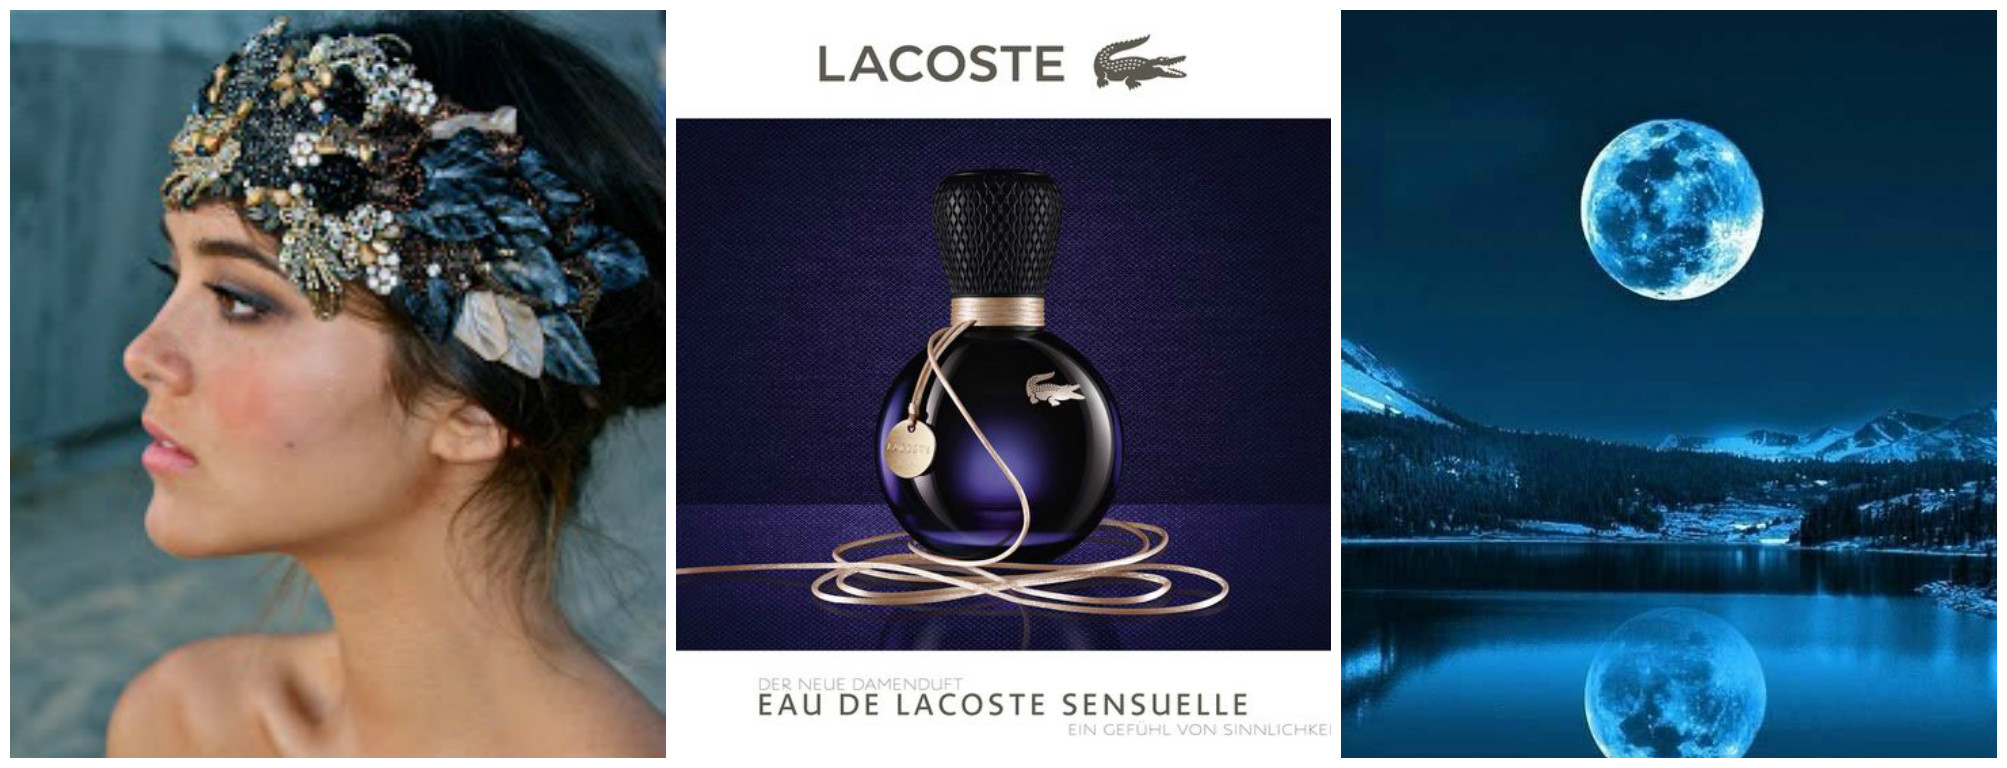 Perfume of the Day: Eau de Lacoste Sensuelle by Lacoste